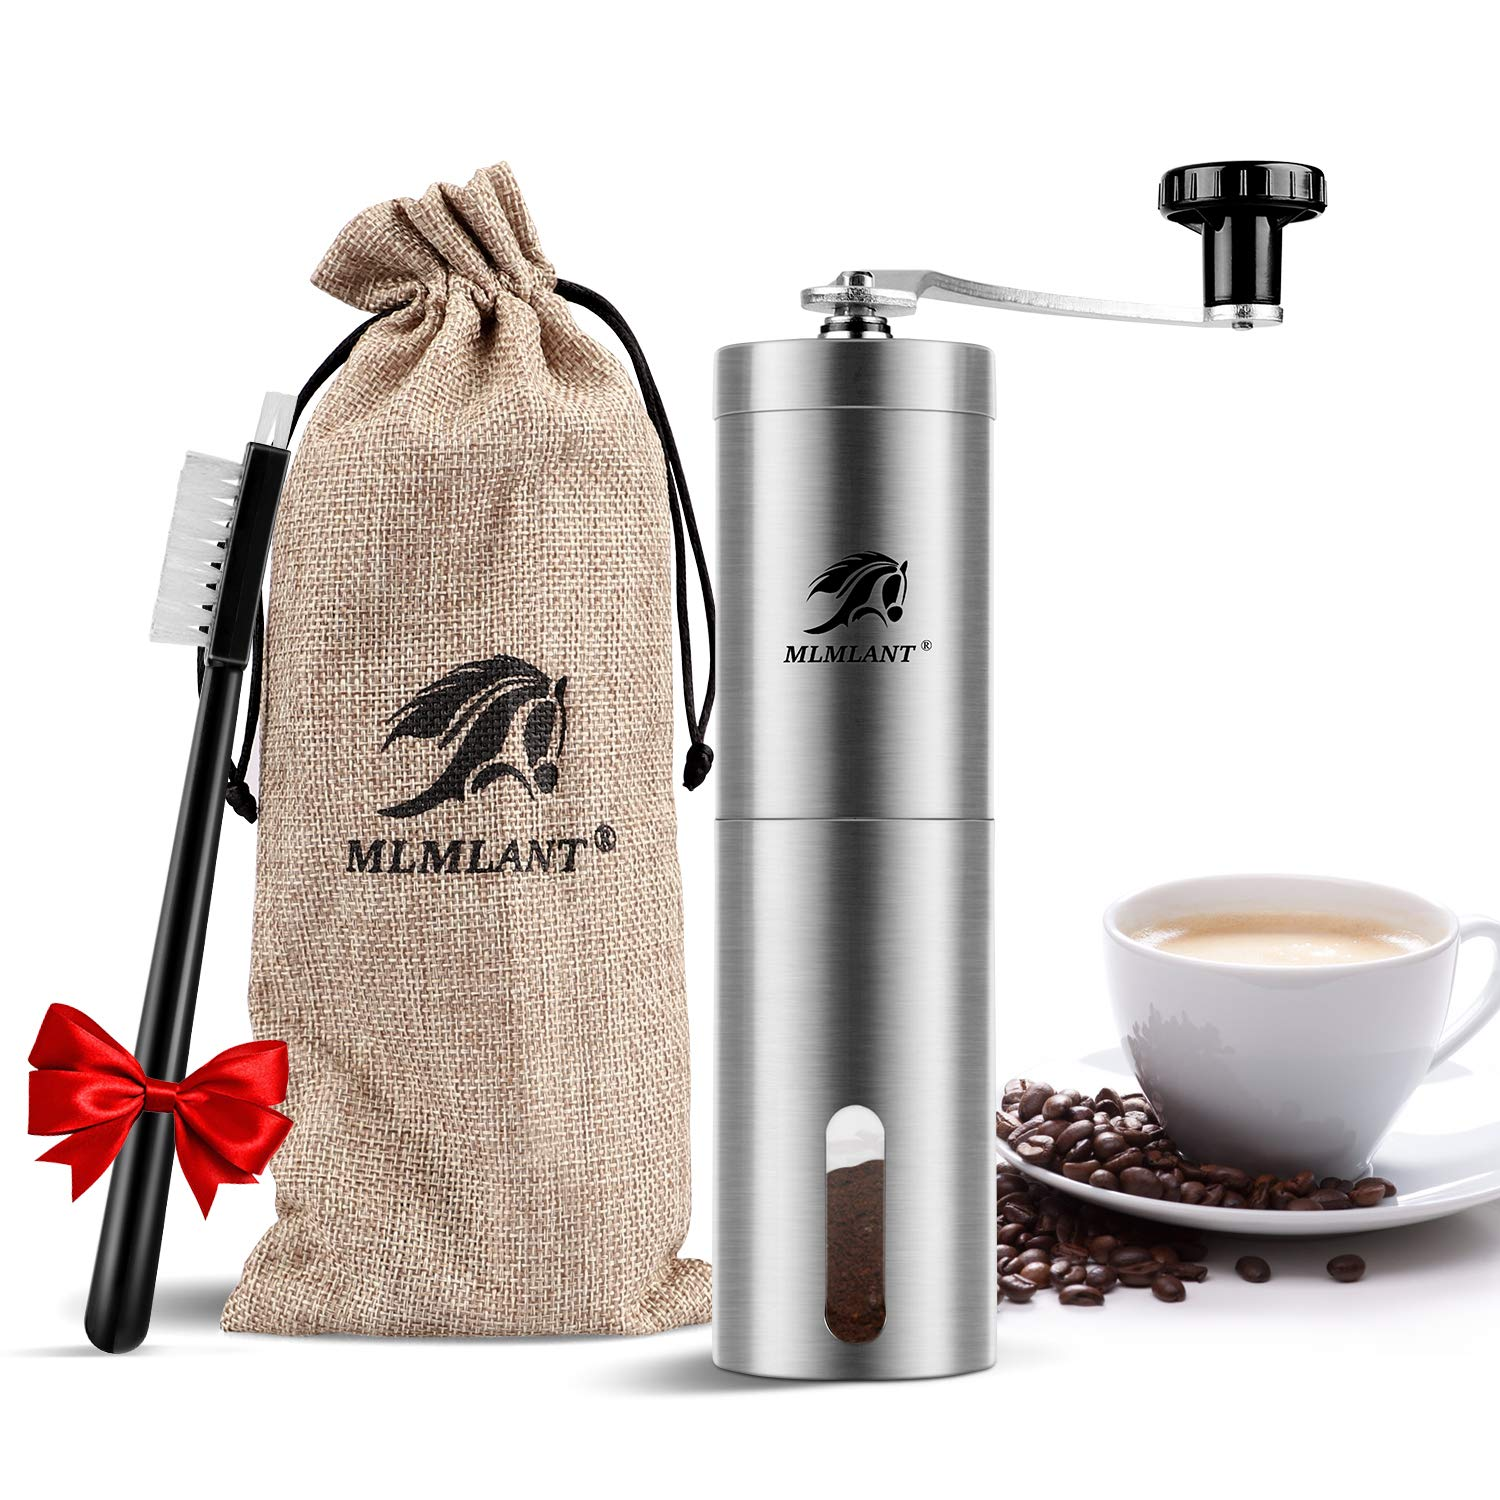 MLMLANT Manual Coffee Grinder with Adjustable Setting - Conical Burr Mill & Brushed Stainless Steel Whole Bean Burr Coffee Grinder for Aeropress, Drip Coffee, Espresso, French Press, Turkish Brew